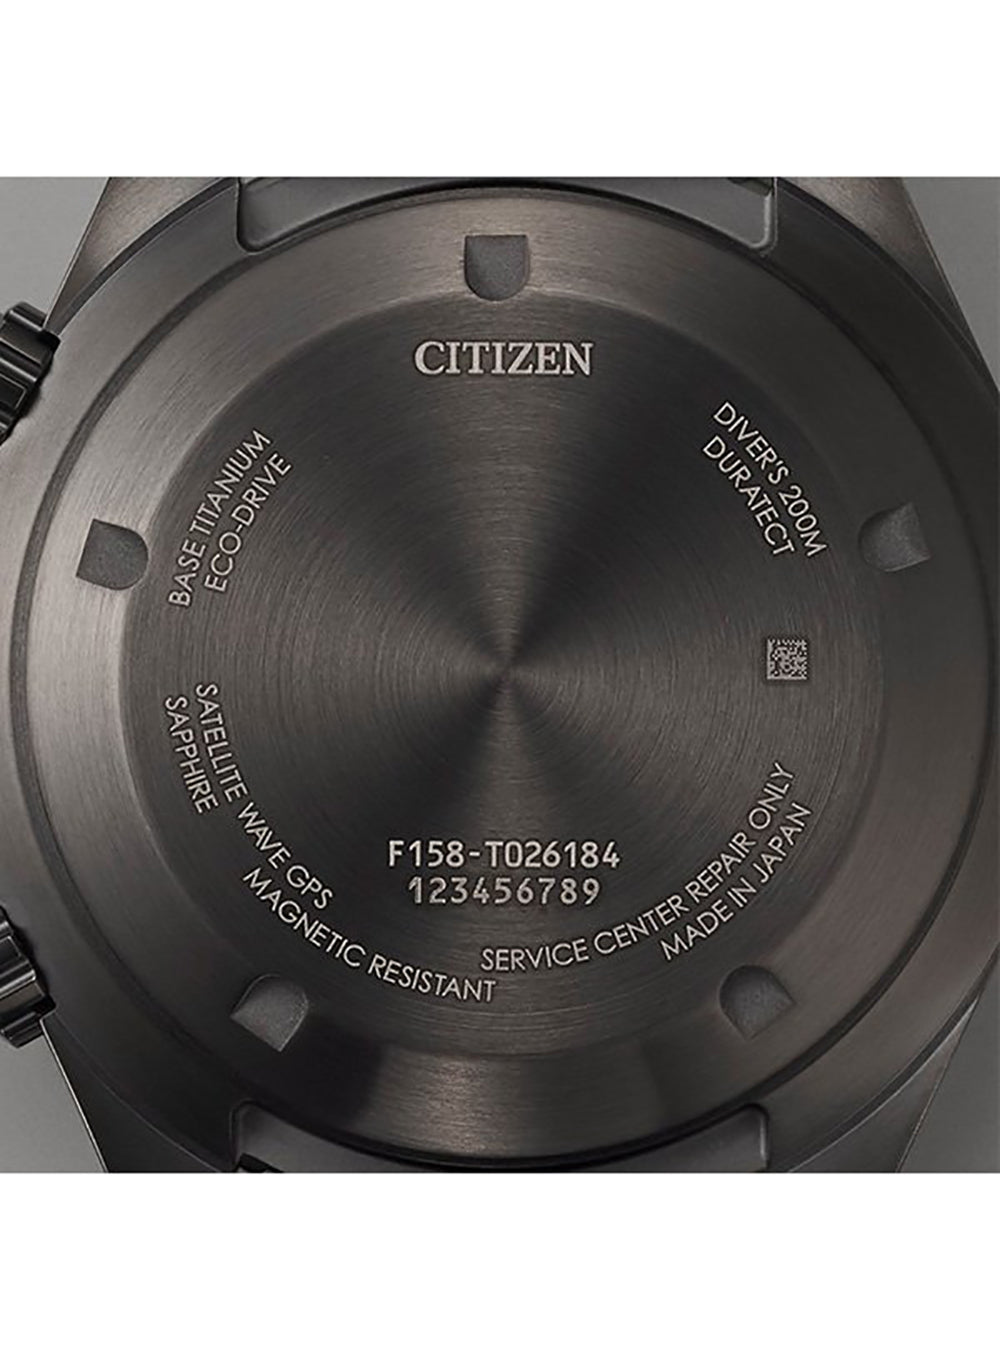 CITIZEN PROMASTER ECO-DRIVE SATELLITE WAVE GPS DIVER'S CC5006-06L MADE IN JAPAN JDM